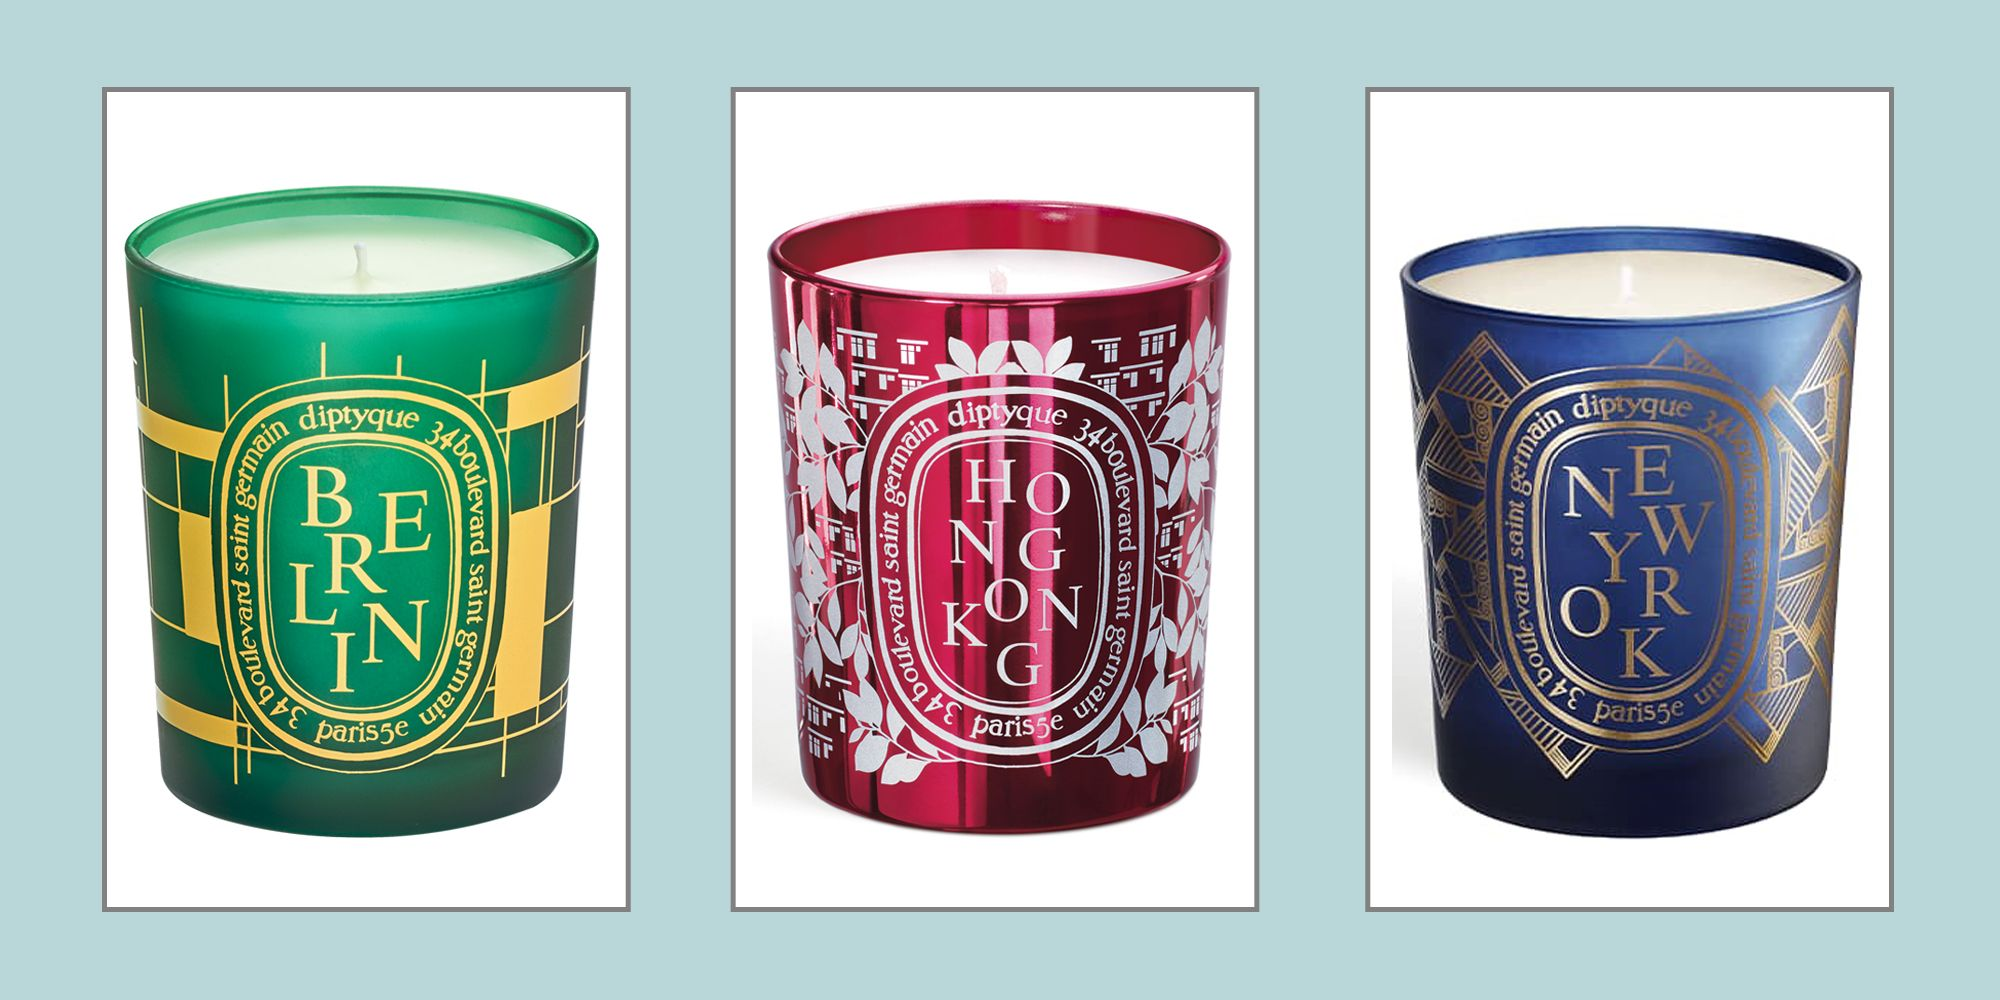 Diptyque's Popular City Candles Are Back for Five Days Only